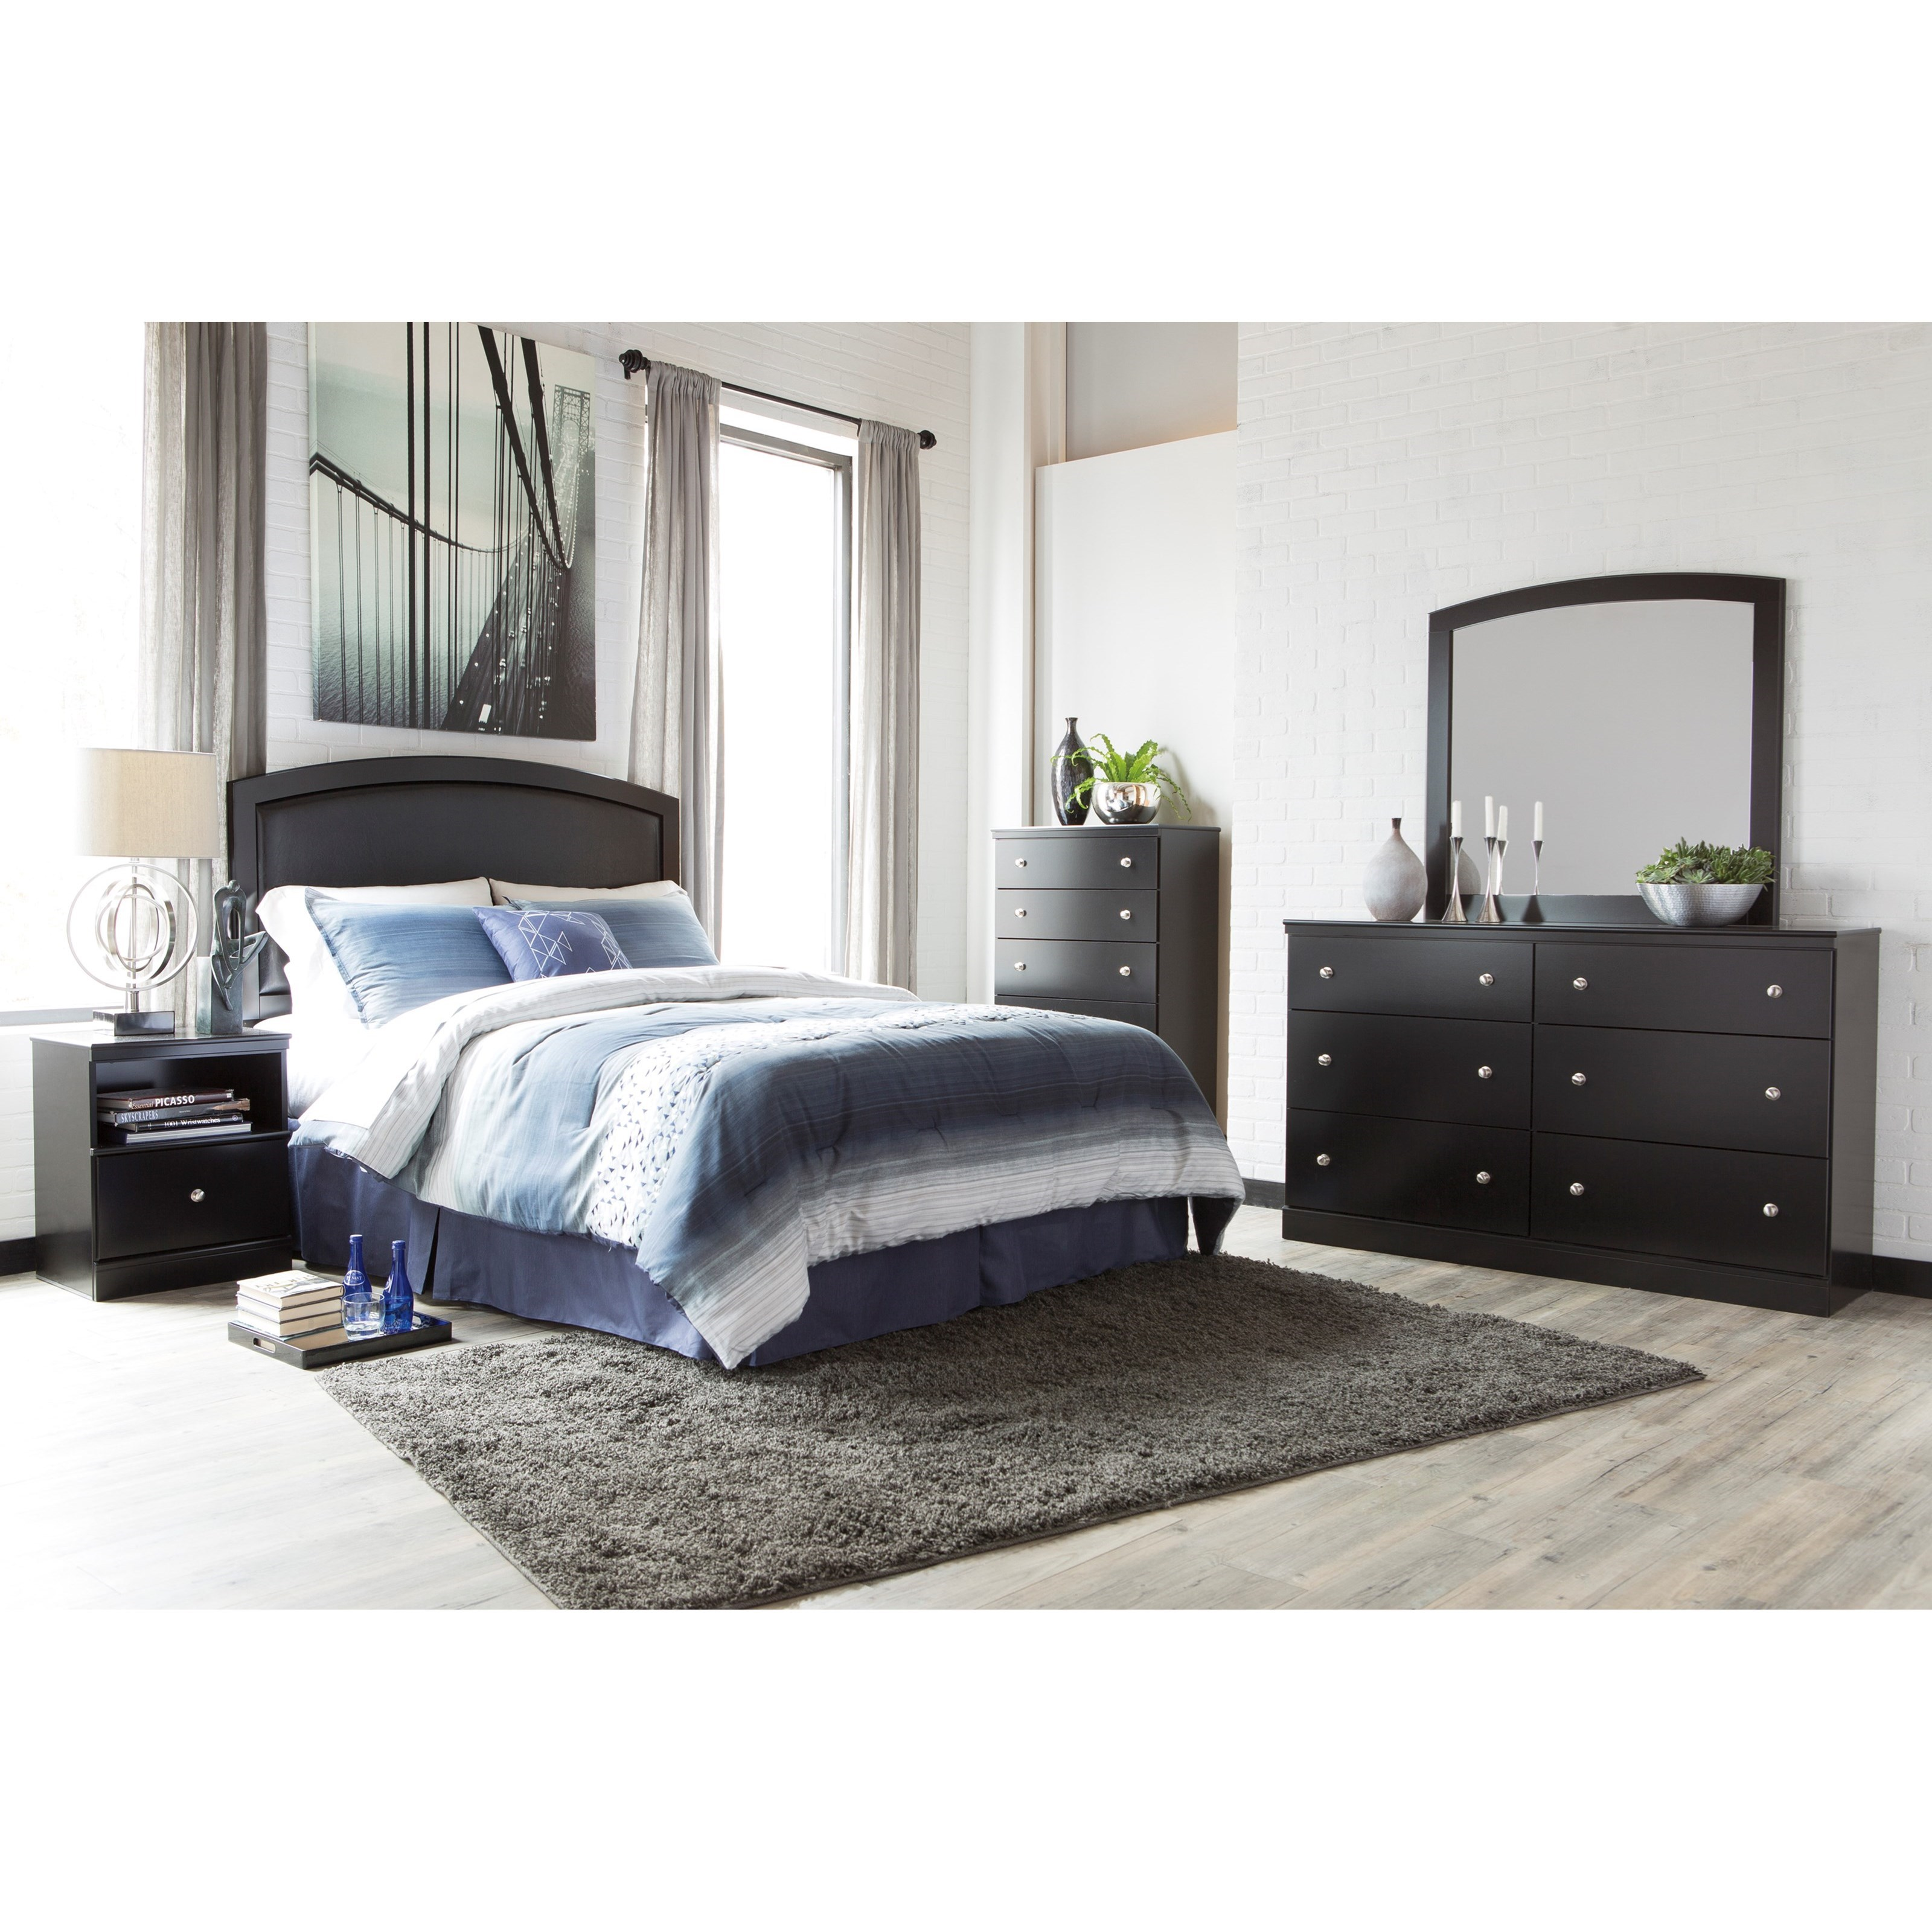 Signature Design by Ashley Emmafield Queen/Full Bedroom Group - Item Number: B420 QF Bedroom Group 4